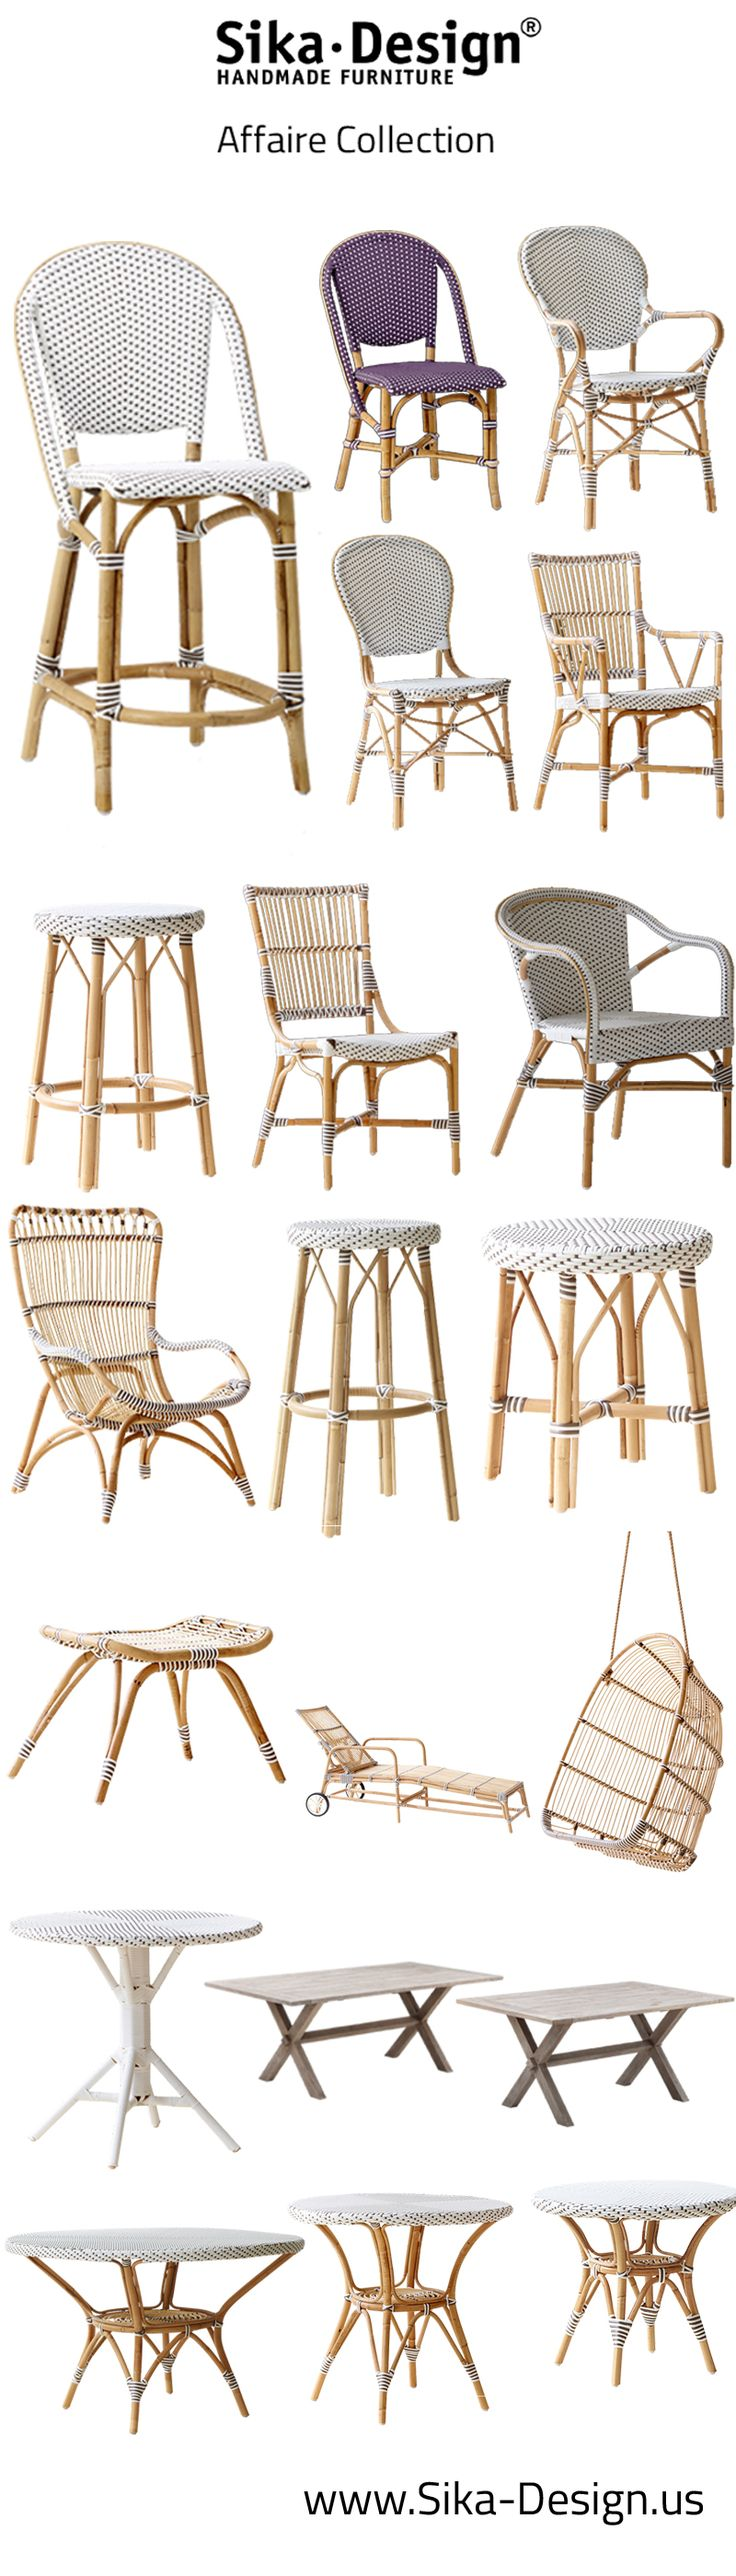 The Affaire Collection is designed for upper end cafes, brasseries, bistros and restaurants in historical European cities and capitals throughout the world. Our handcrafted Affaire French bistro chairs, stools and tables bring you back to the atmosphere of Paris life in the 30s and are available in an array of updated eye catching colors.